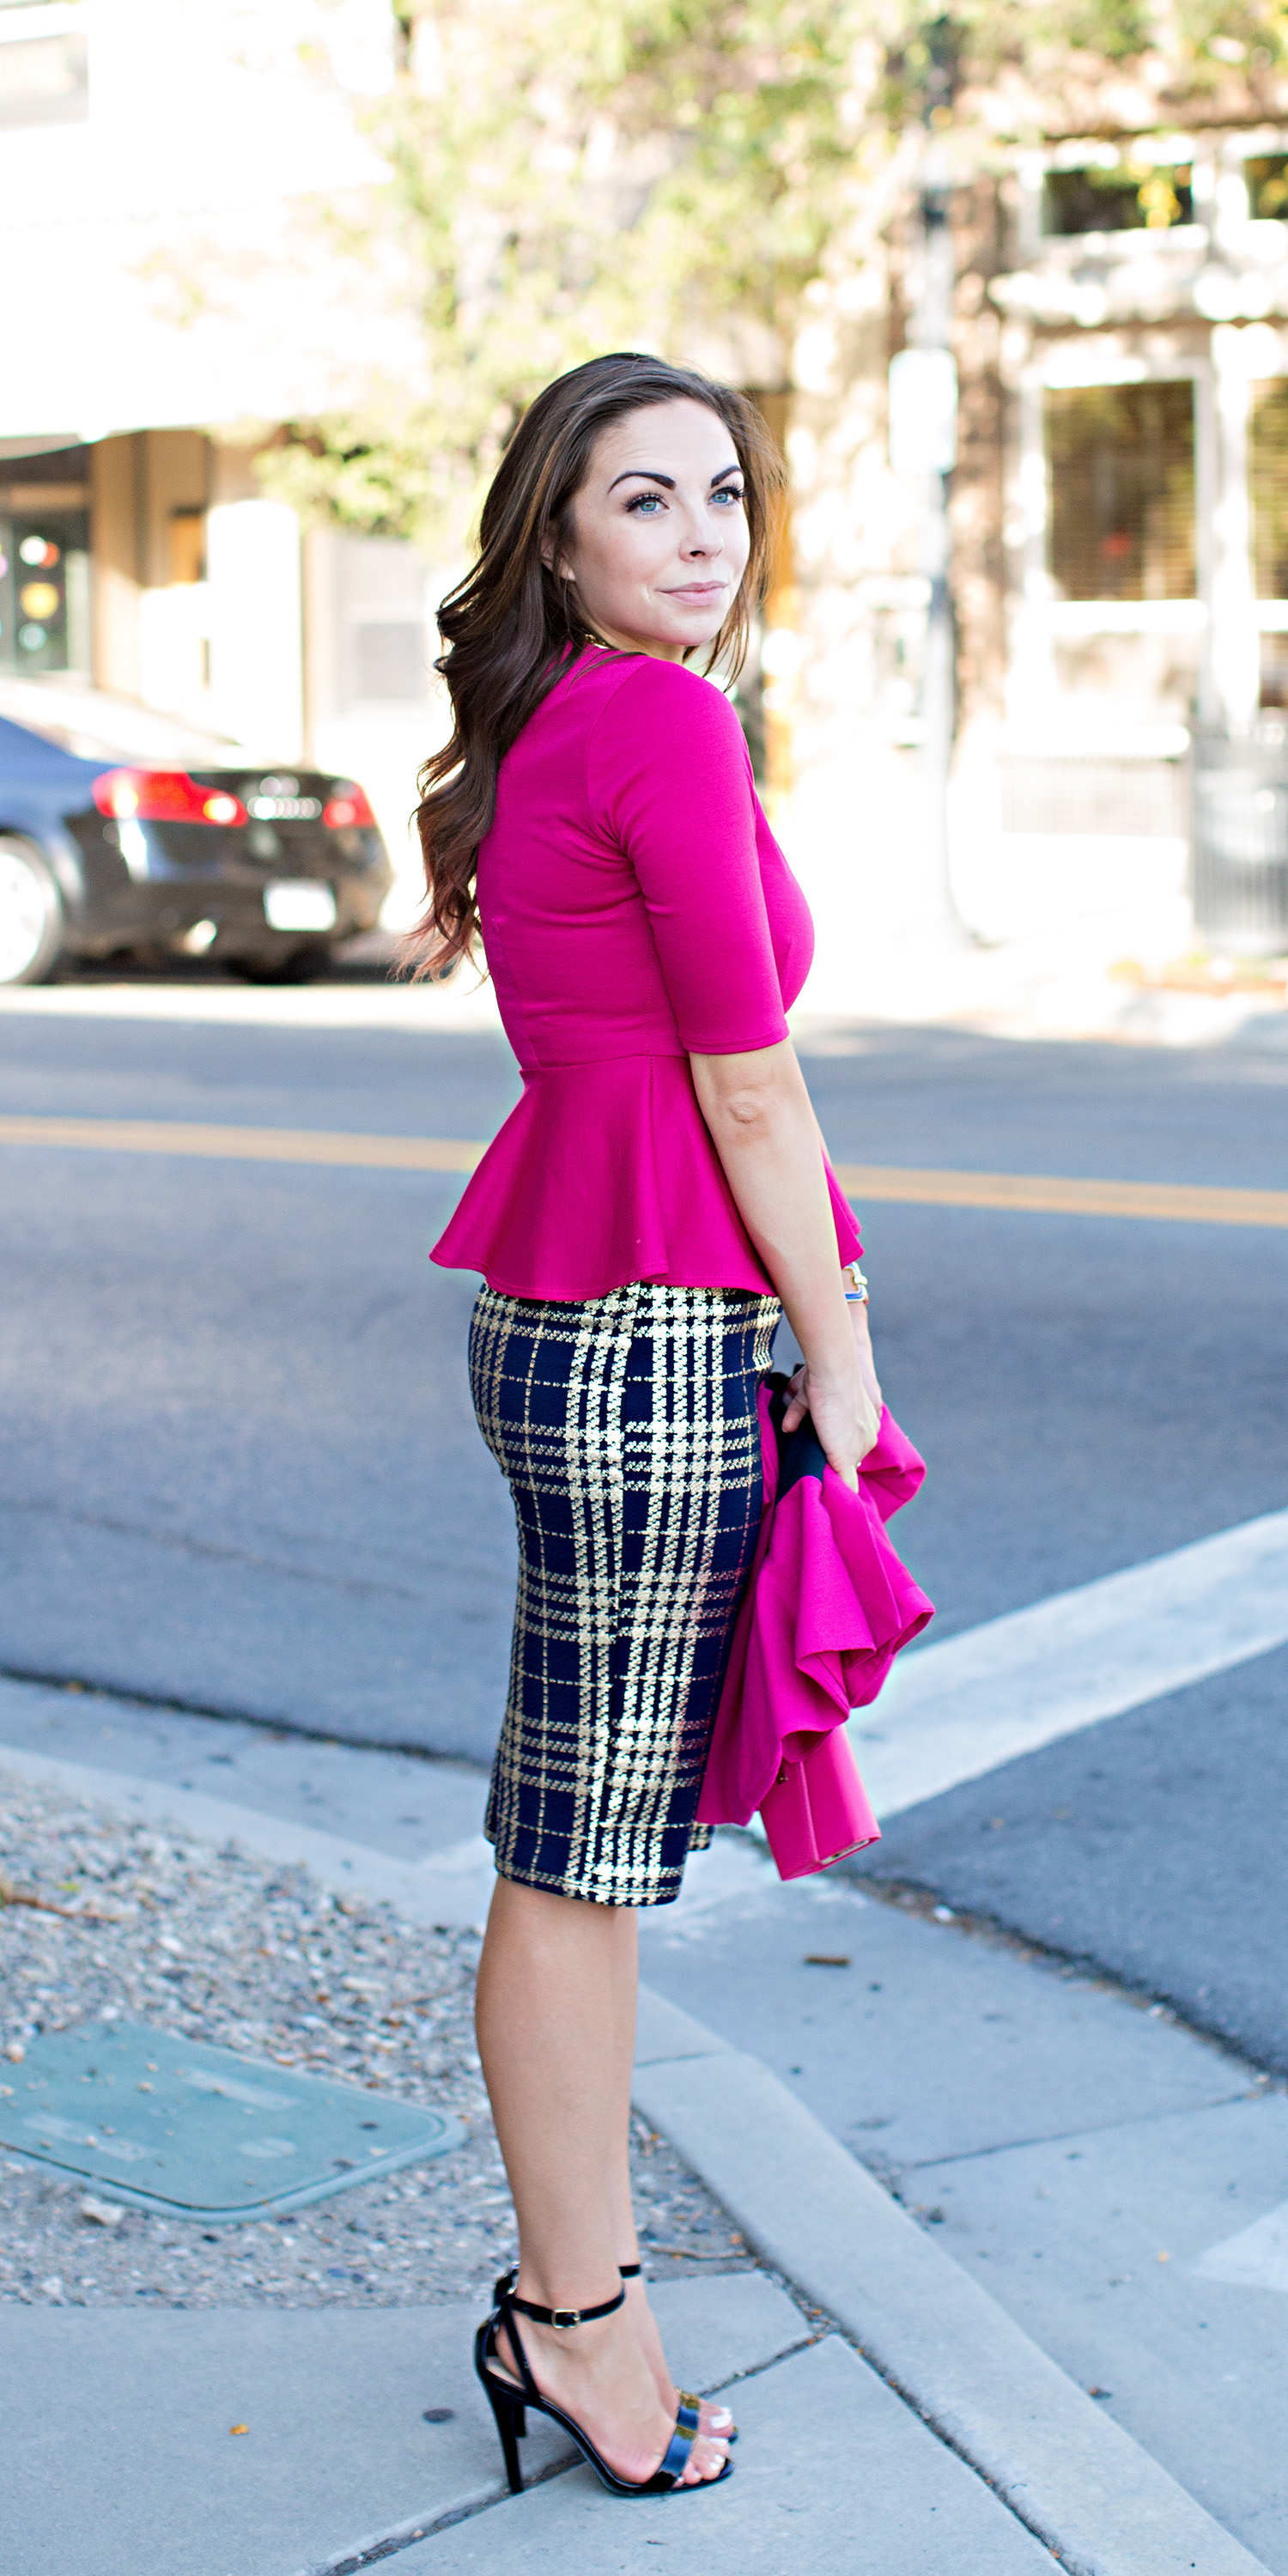 """Mindy Kaling Inspired Outfit"" How to Wear Pink to the Office like a Boss"